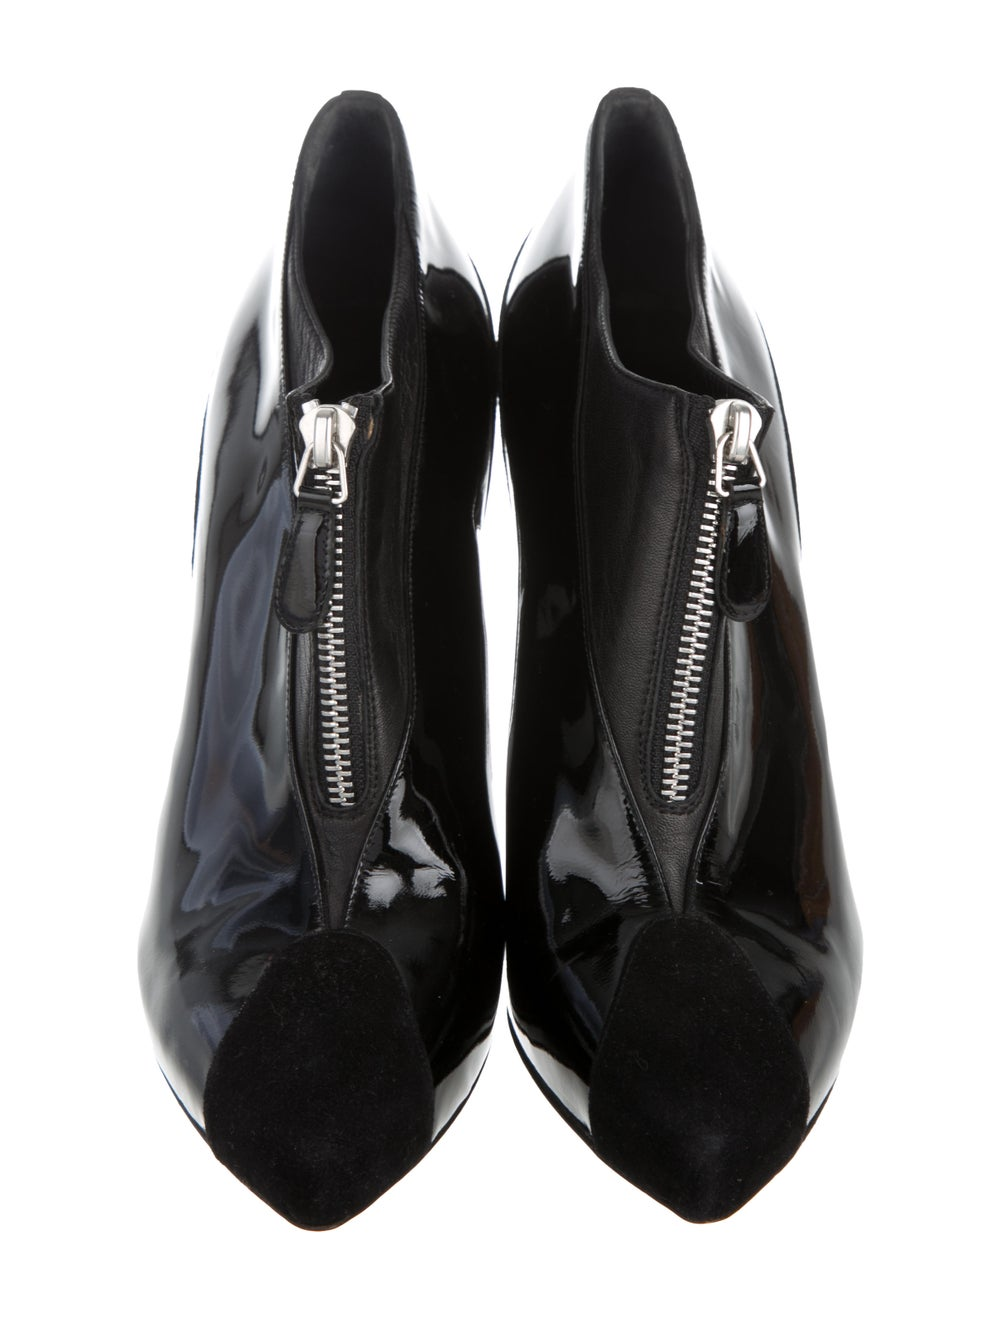 Balenciaga Cap-Toe Patent Leather Ankle Booties B… - image 3